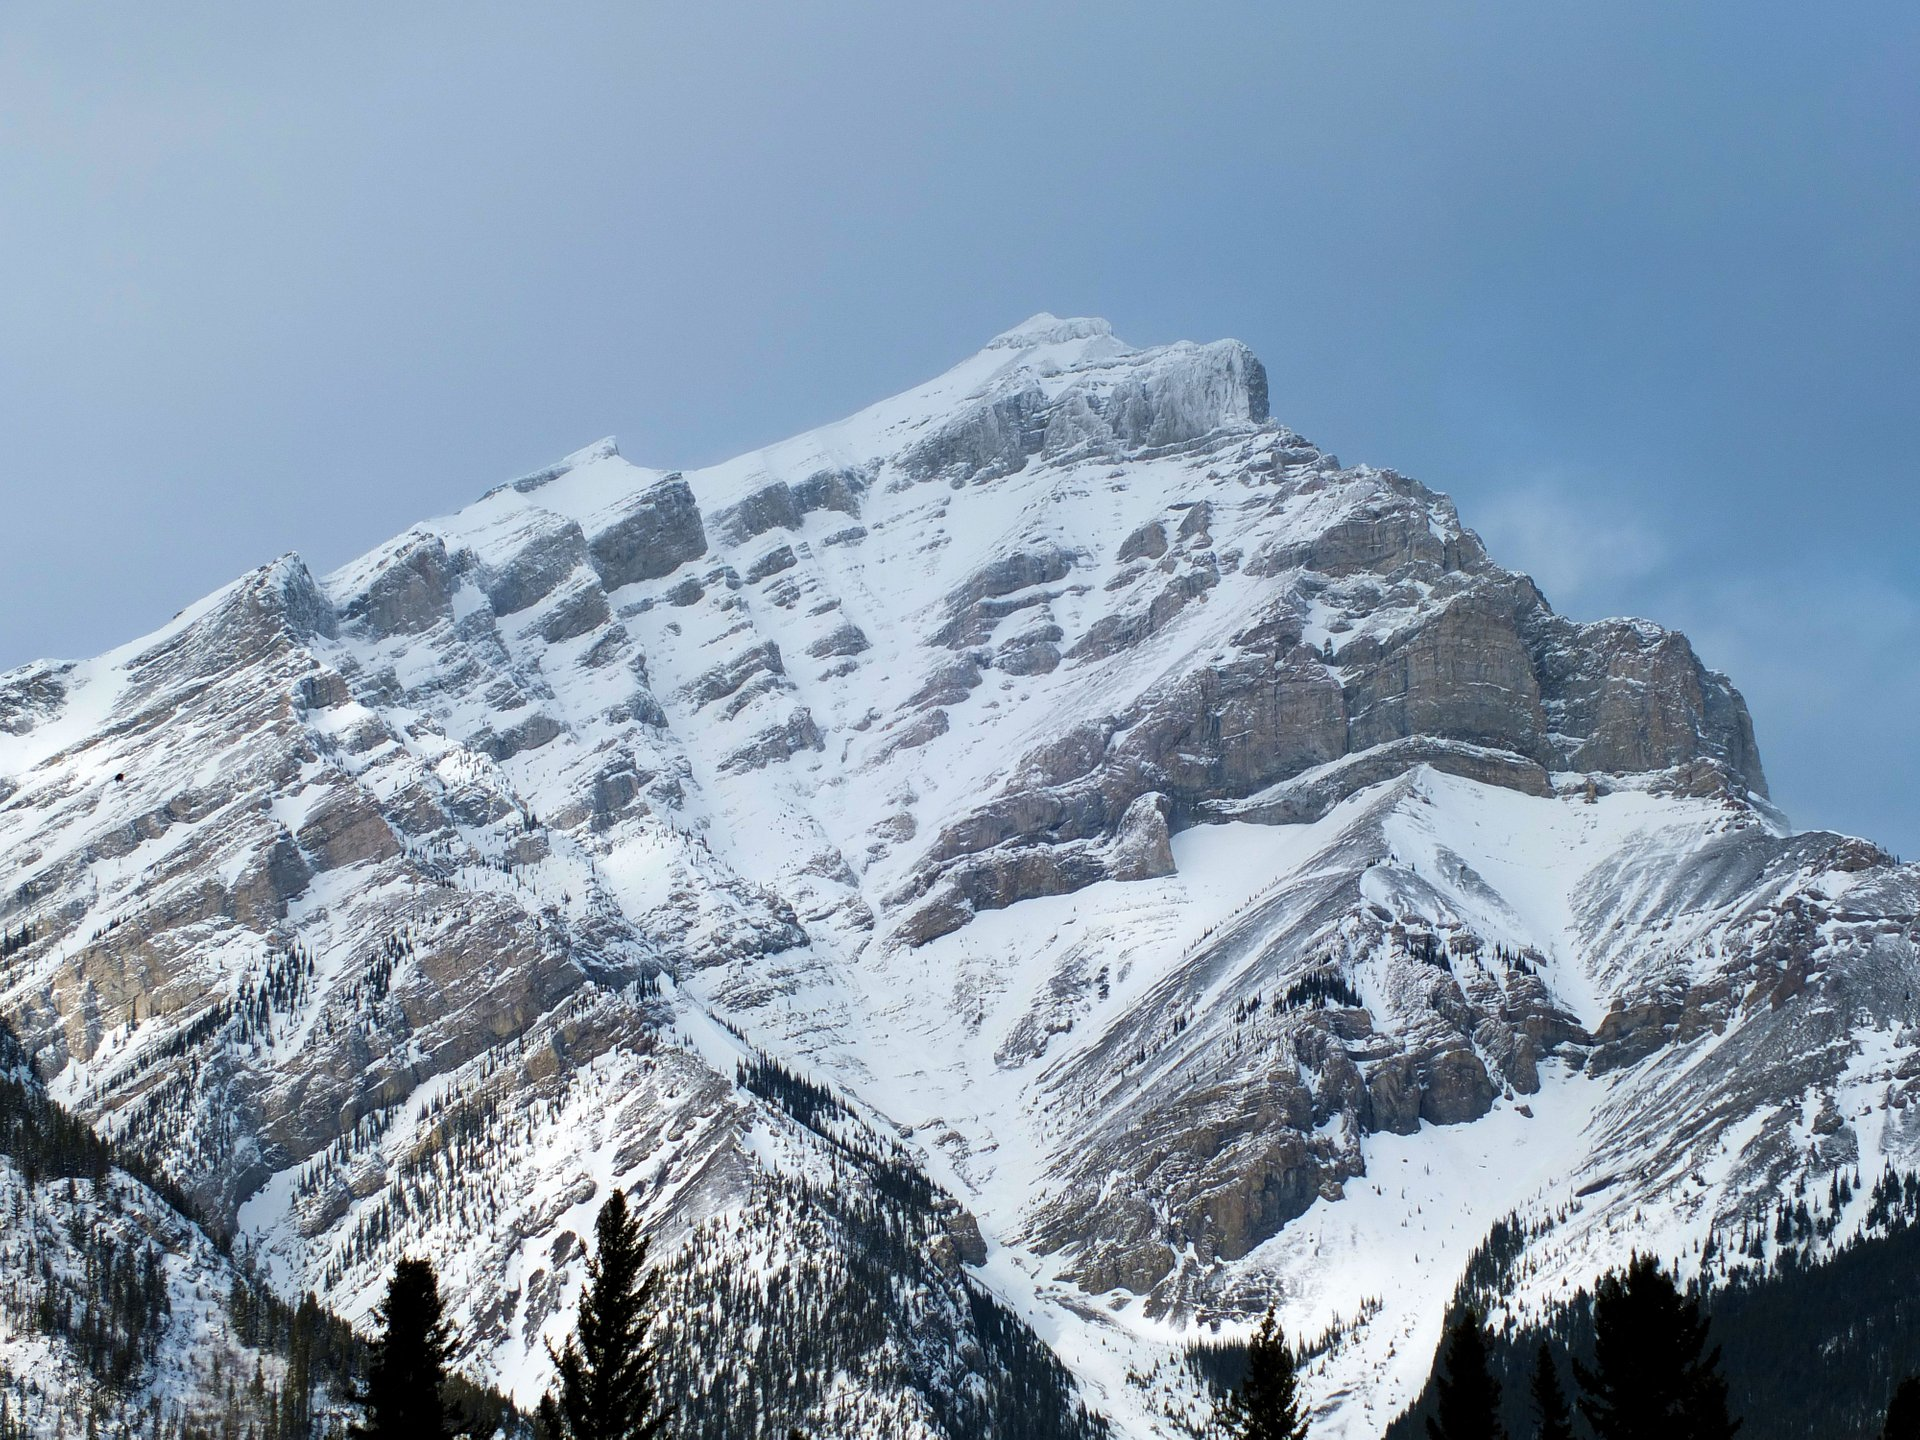 Cascade Mountain Hike in Banff & Jasper National Parks 2020 - Best Time